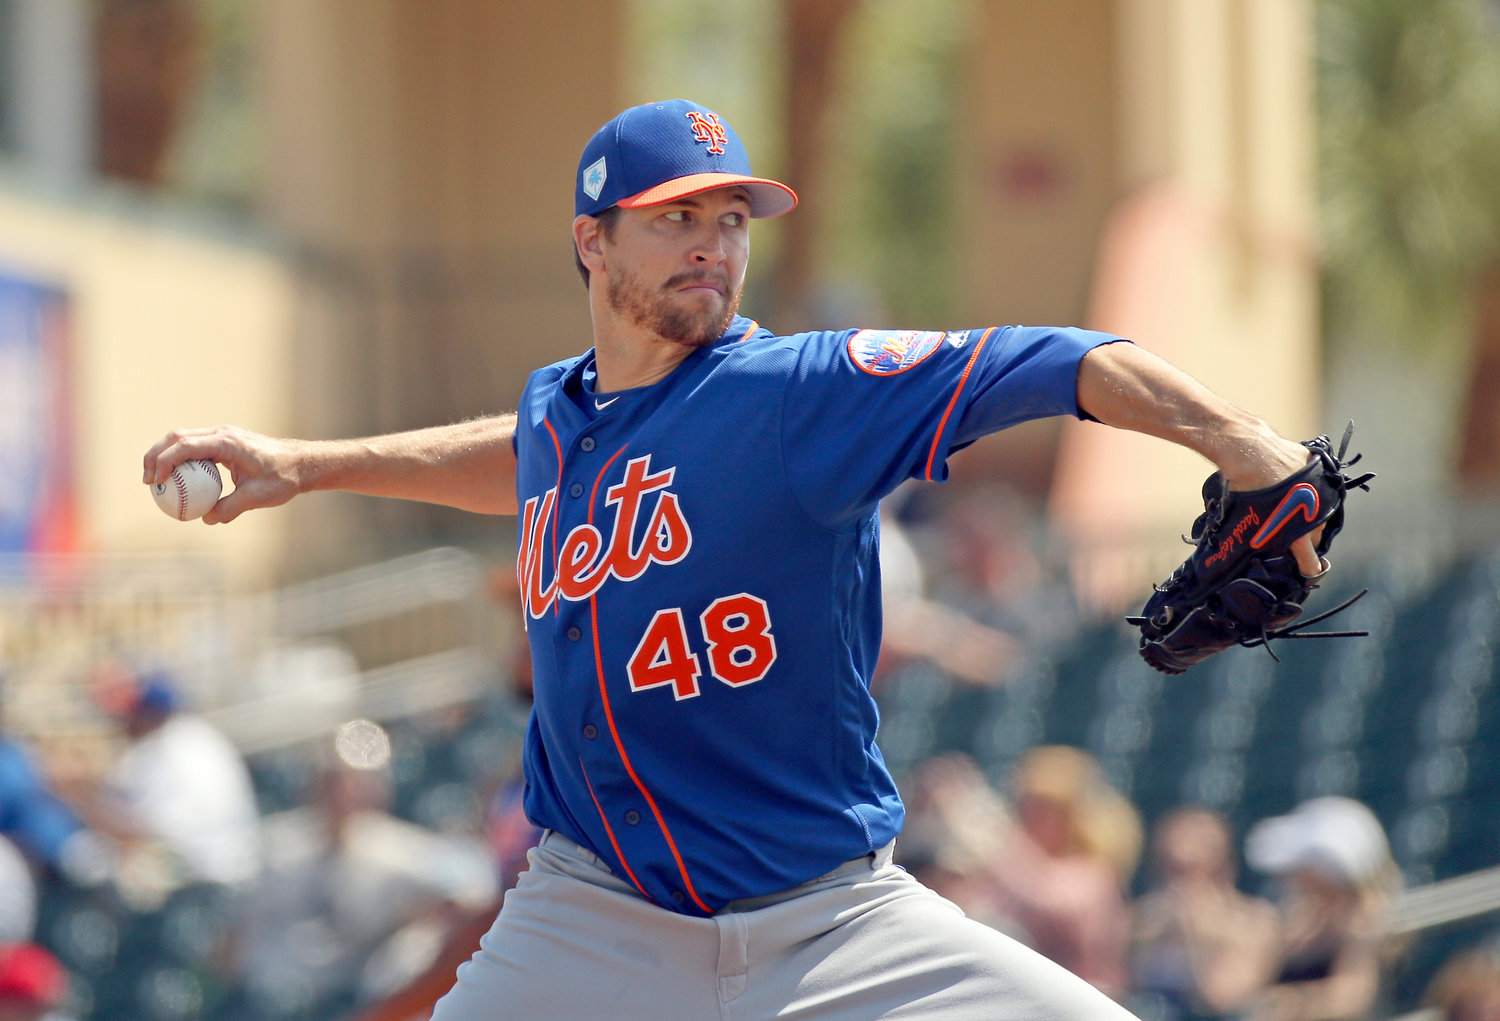 COMING TO THE DOME — Mets pitcher Jacob deGrom, shown during Tuesday's spring training game against the Marlins in  Jupiter, Fla., is among the players expected to work out at the Carrier Dome on March 26.